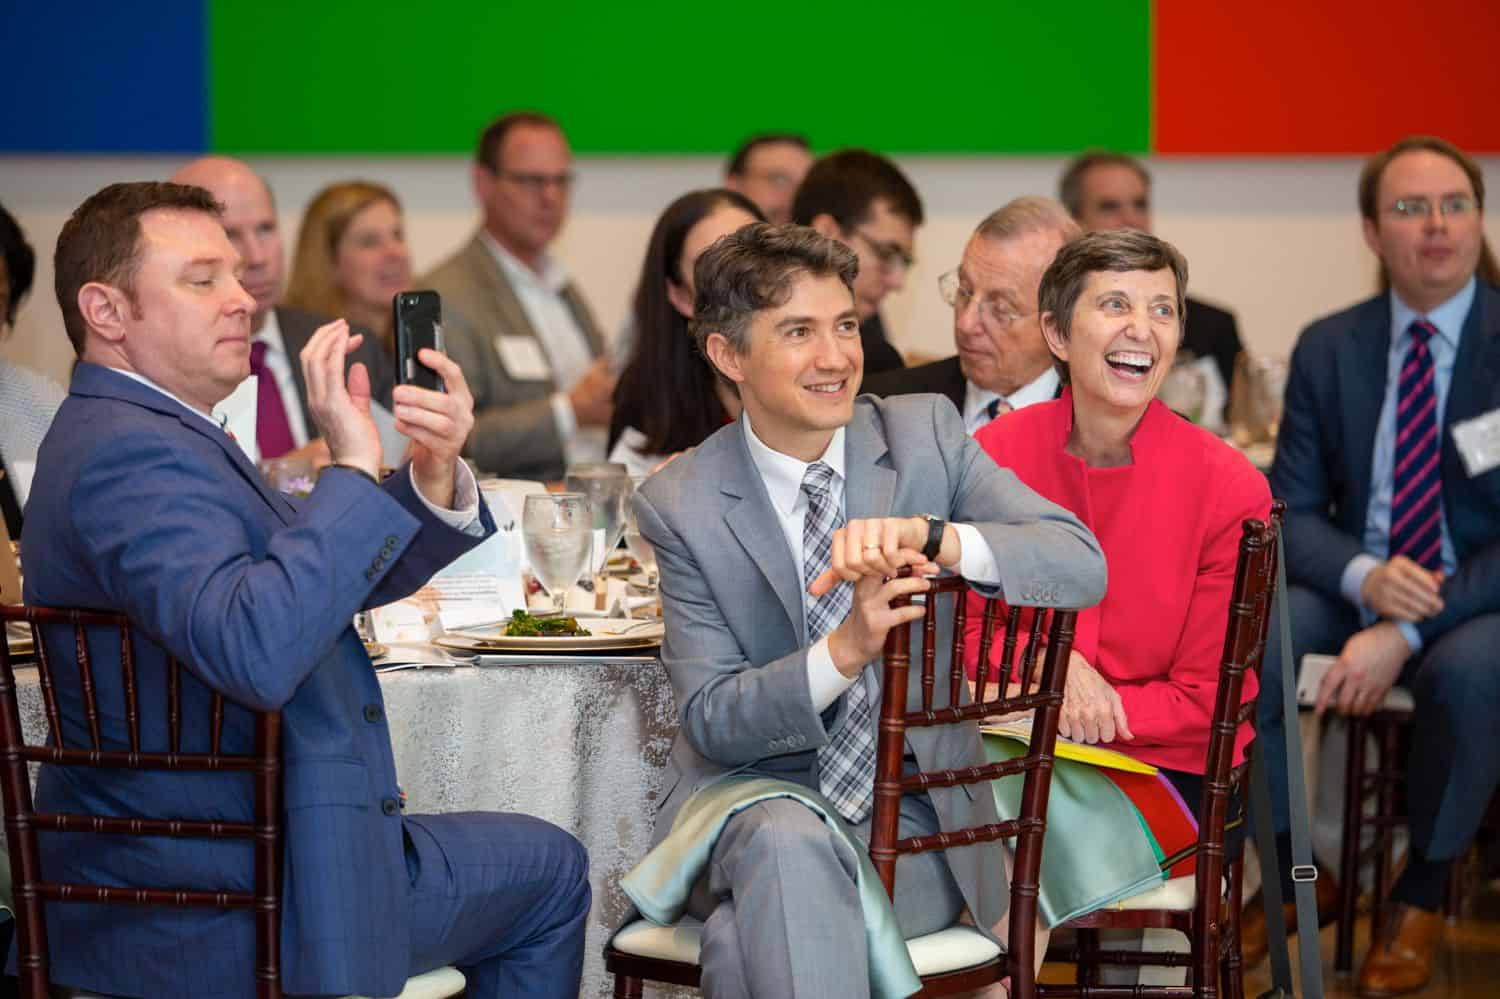 Build Your Dream Photography Business on a Budget: Dinner guests at a corporate event watch a speaker and smile